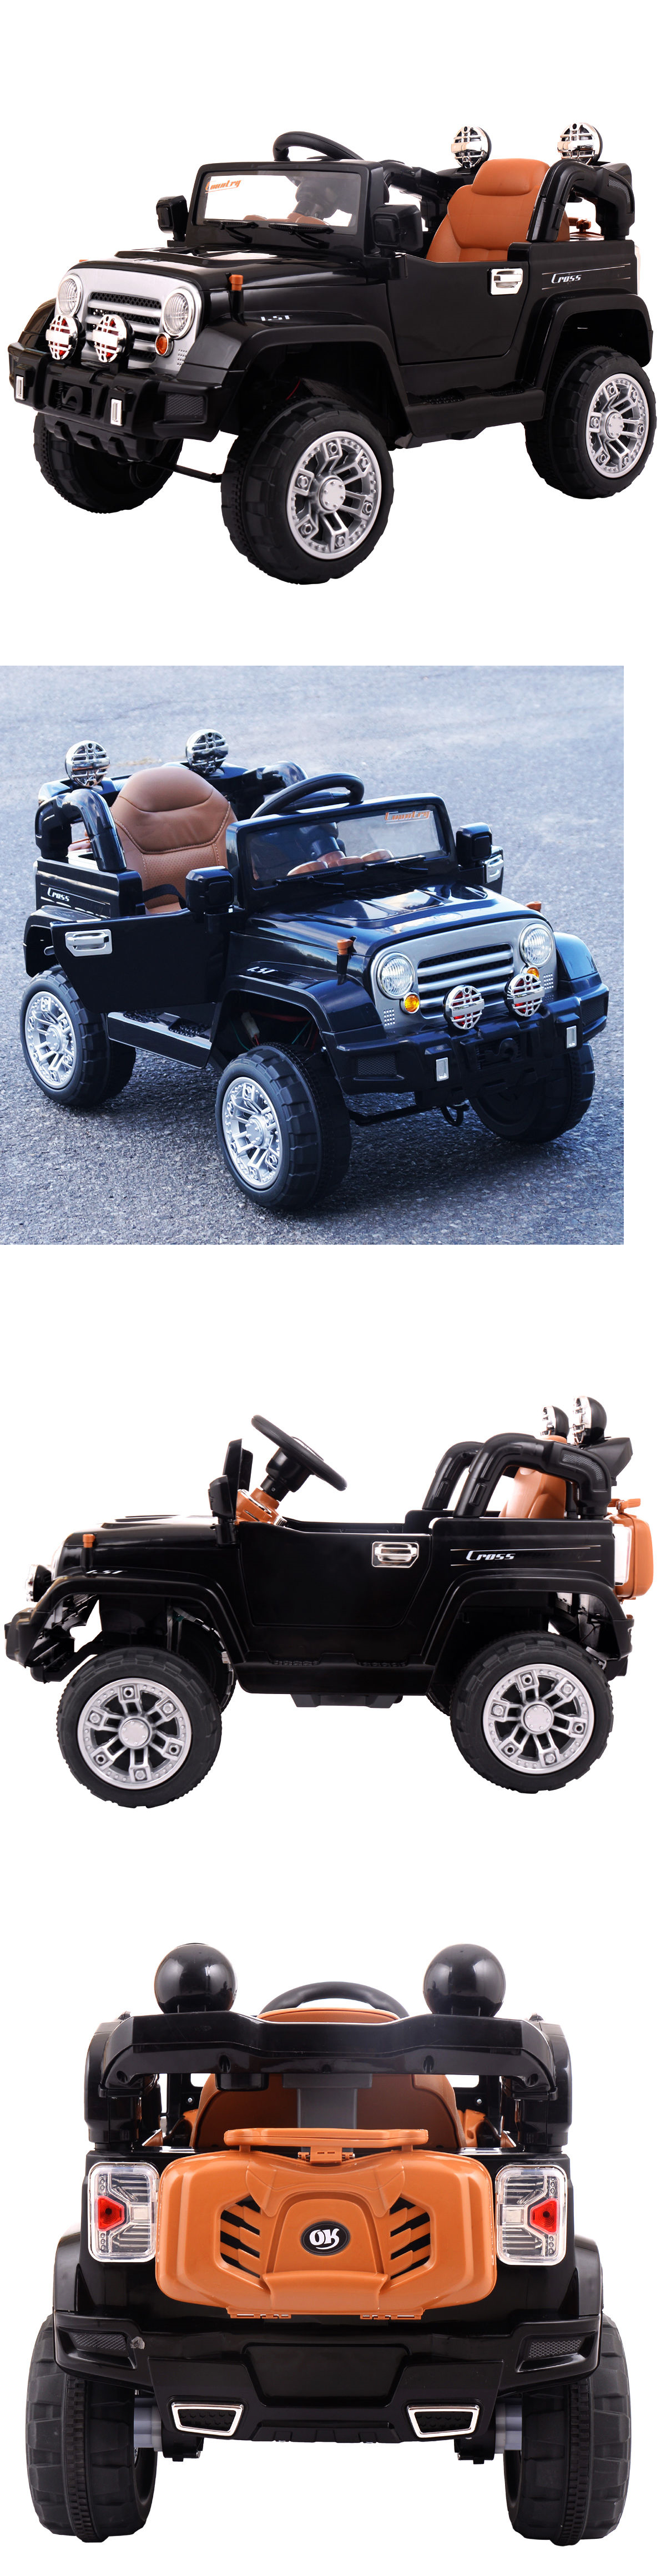 Jeep toys for kids  Ride On Toys and Accessories  Jeep Style V Kids Ride On